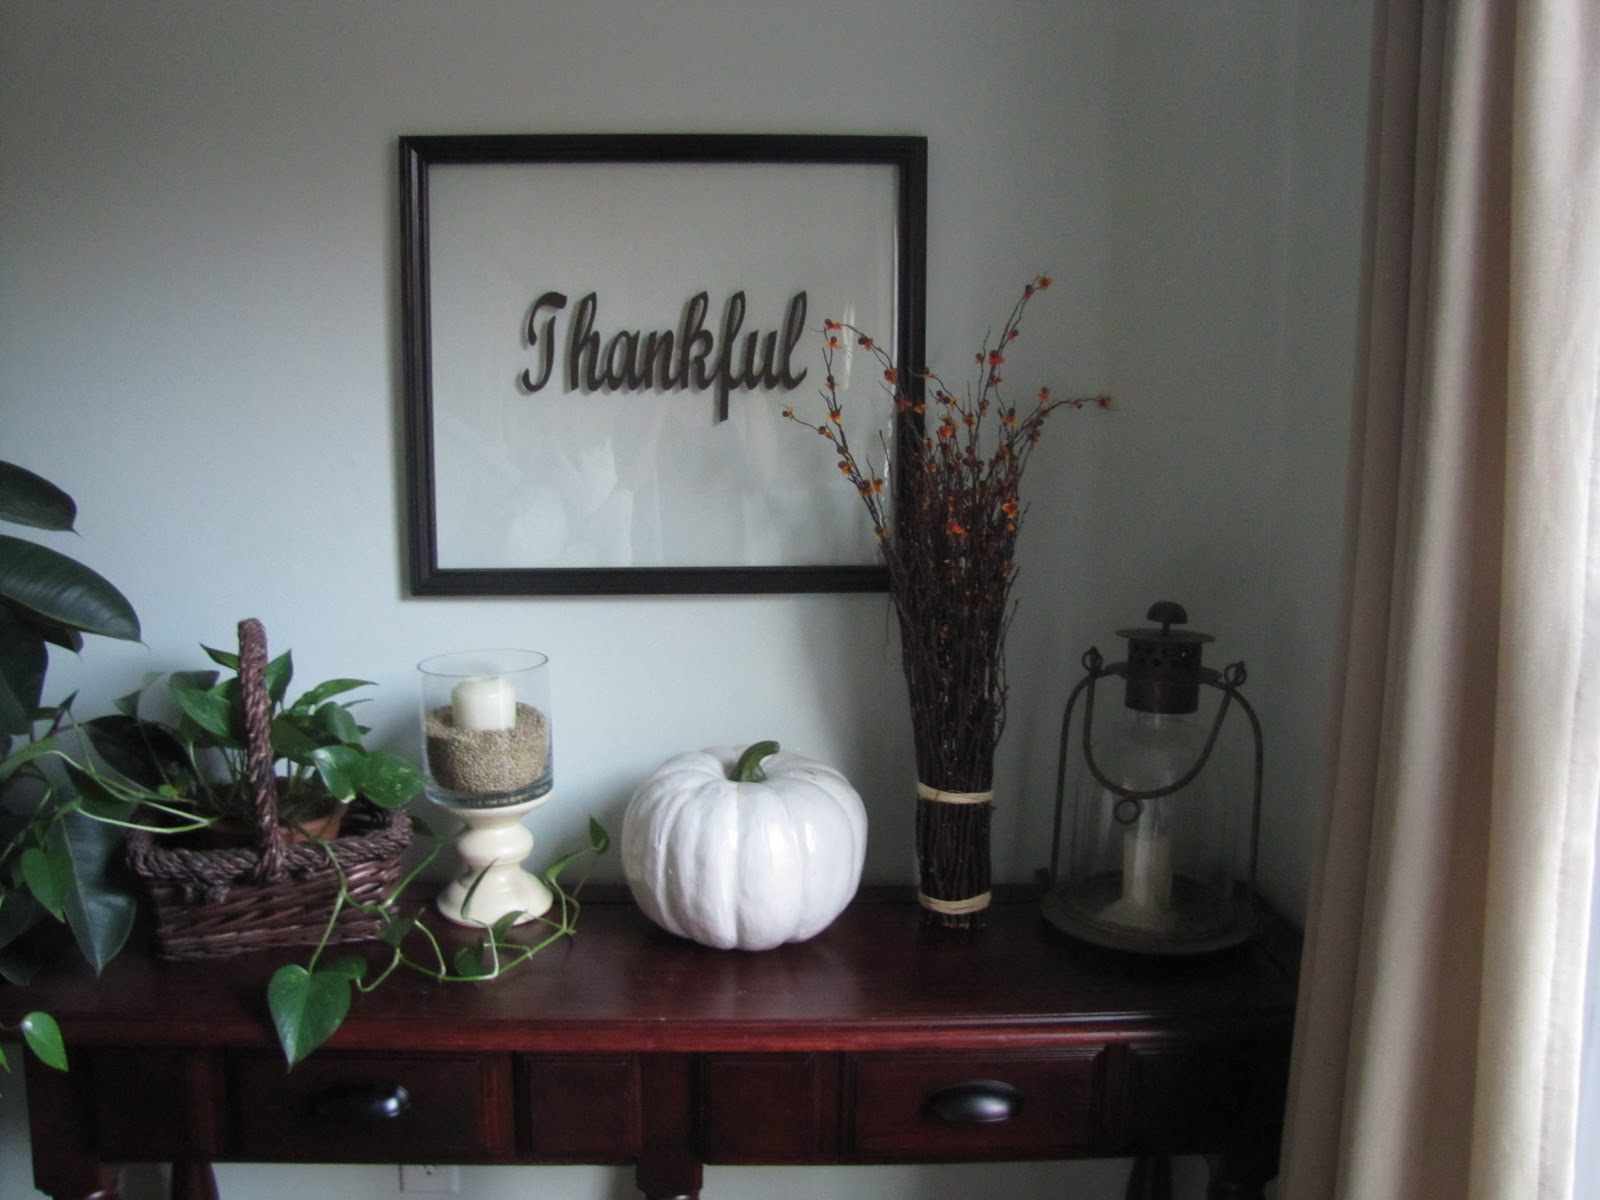 The Evolution of Home: Thanksgiving DIY Wall Decor